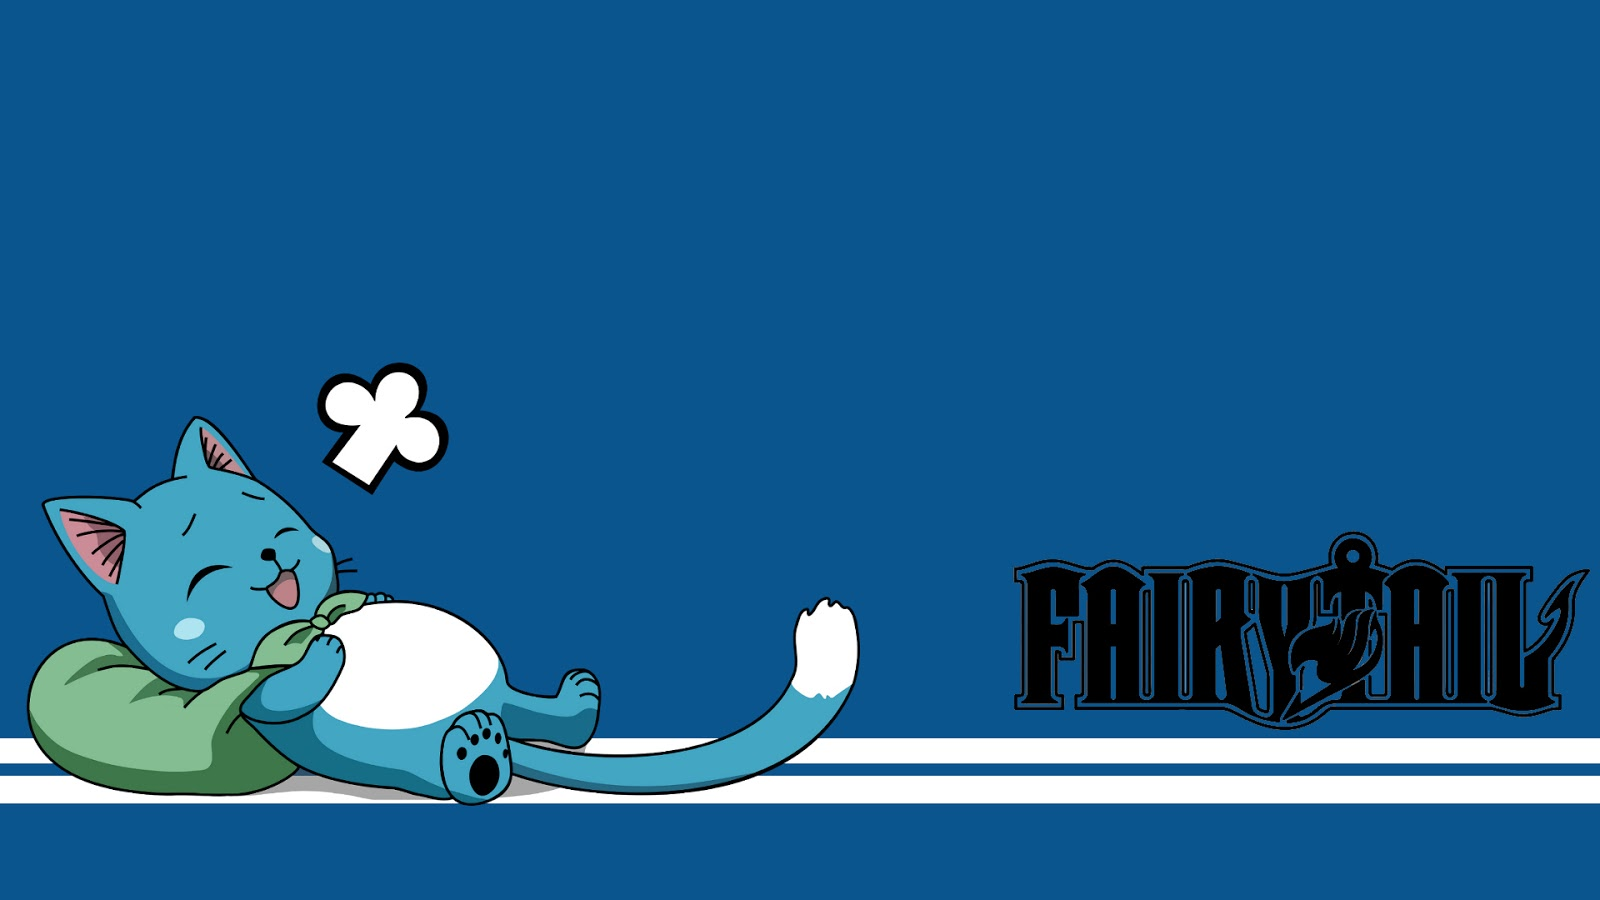 Fairy Tail Happy 32 HD Wallpaper 1600x900